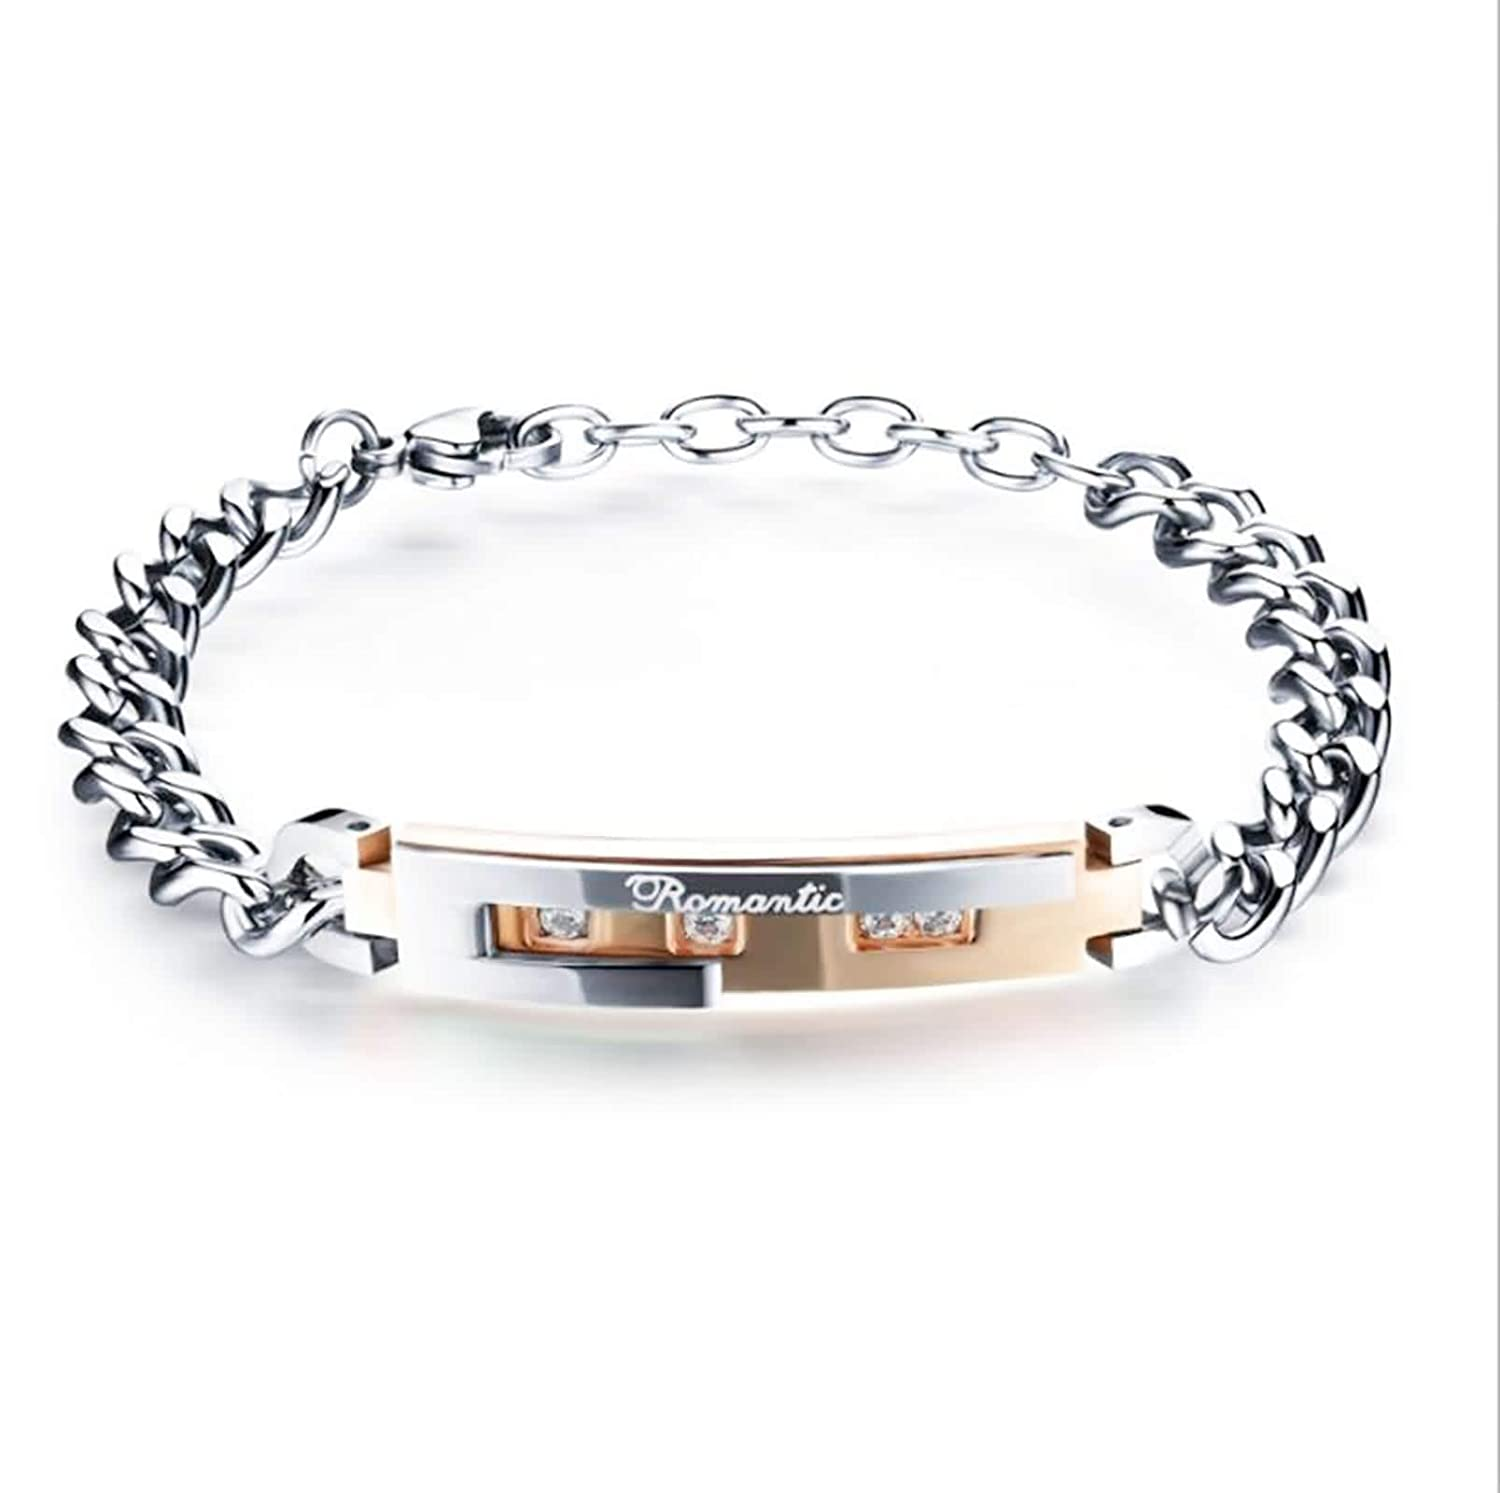 ANAZOZ Jewelry Stainless Steel Chain Link Bracelet for Unisex Adult Engraved Romantic Zirconia Black Rose Gold